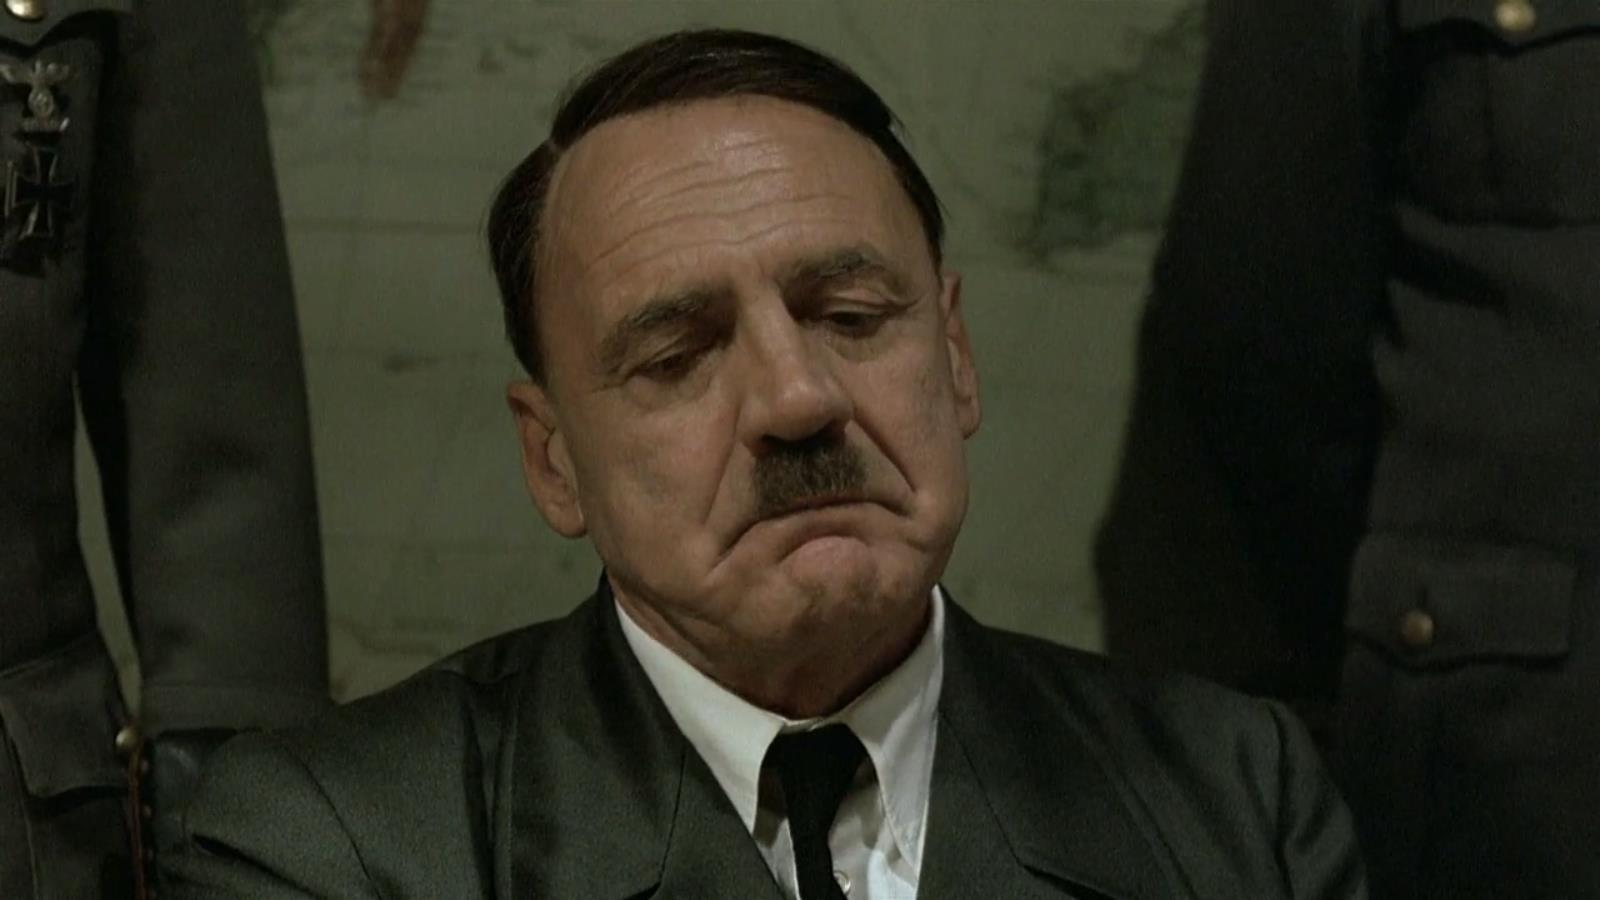 UNILAD Hitlers long face   sad face83510 New York Times Asks Could You Kill Baby Hitler? Internet Responds Accordingly